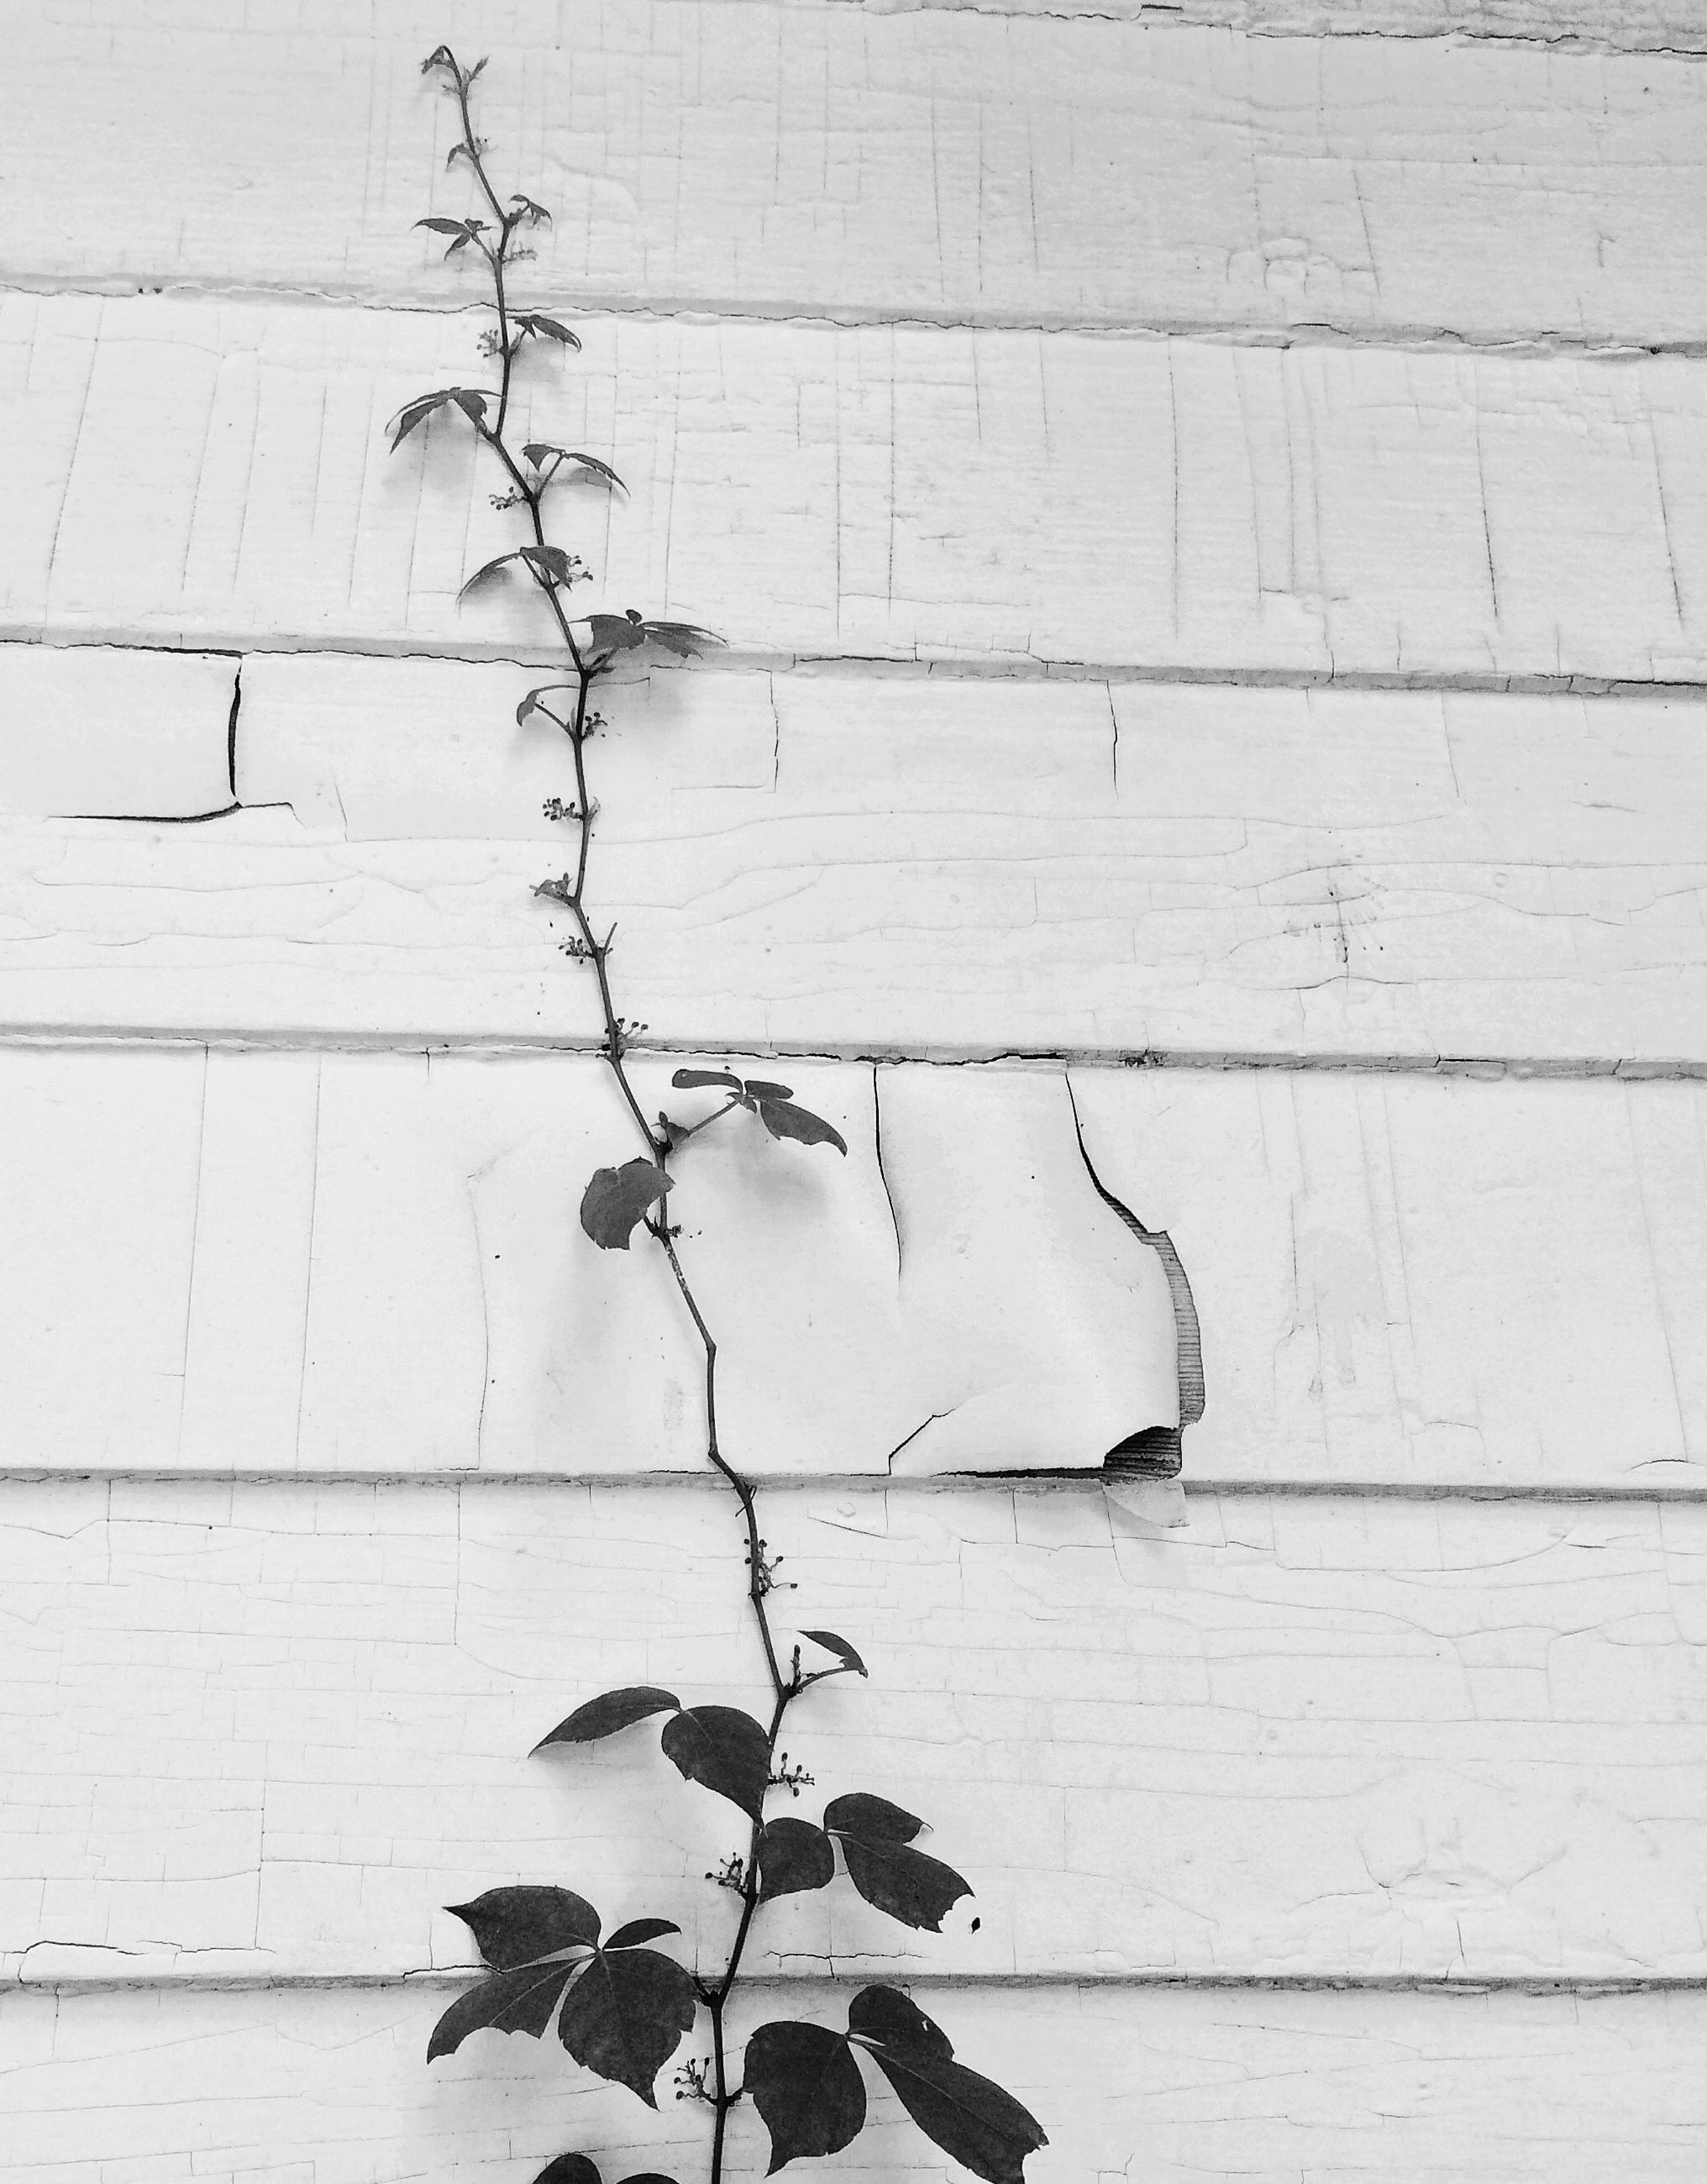 plant, wall - building feature, growth, leaf, close-up, built structure, nature, architecture, branch, building exterior, growing, ivy, wall, outdoors, day, no people, brick wall, textured, stem, weathered